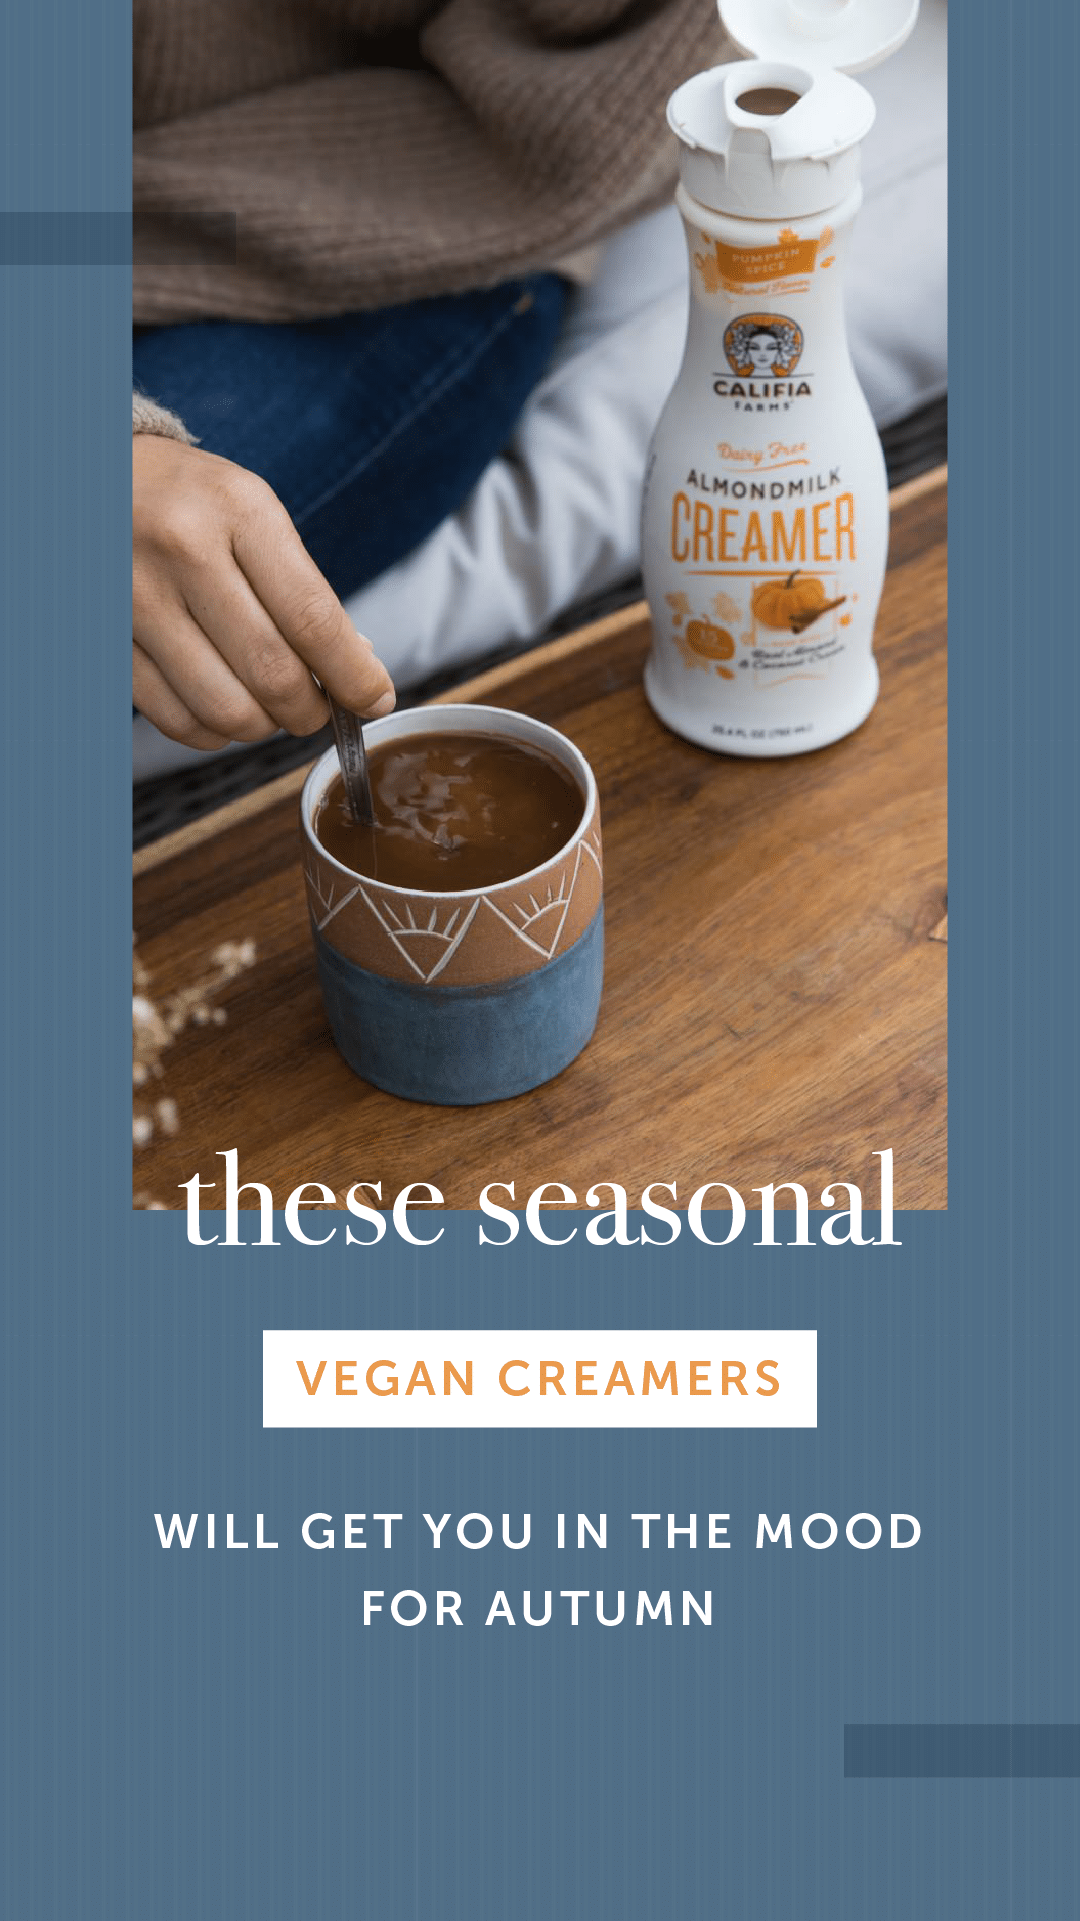 These Seasonal Vegan Creamers Will Get You in the Mood for Fall